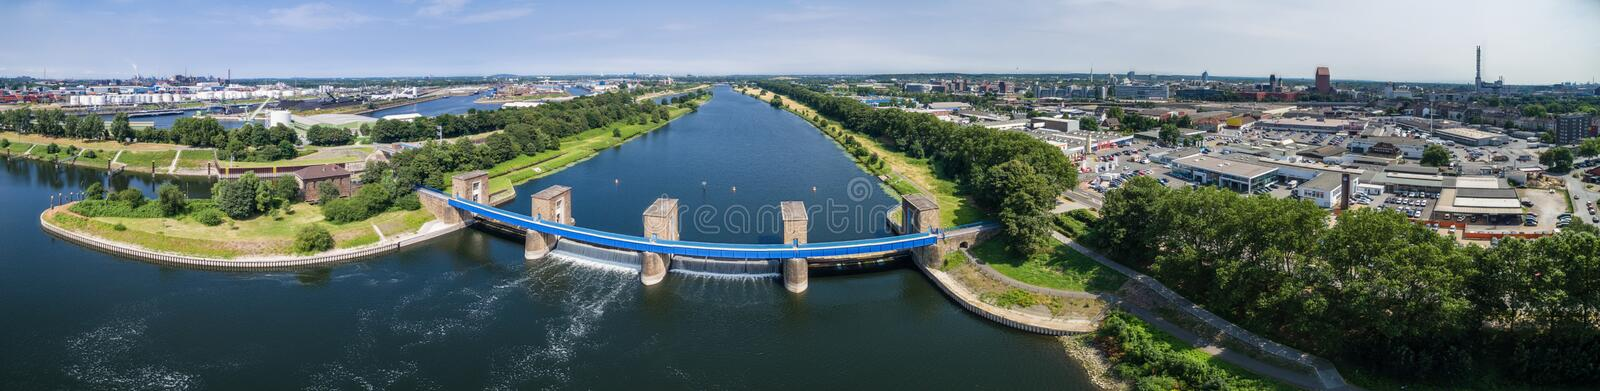 Download Aerial View Of The Historic Ruhr Weir In Duisburg Editorial Stock Photo - Image of duisburg, natural: 83703953